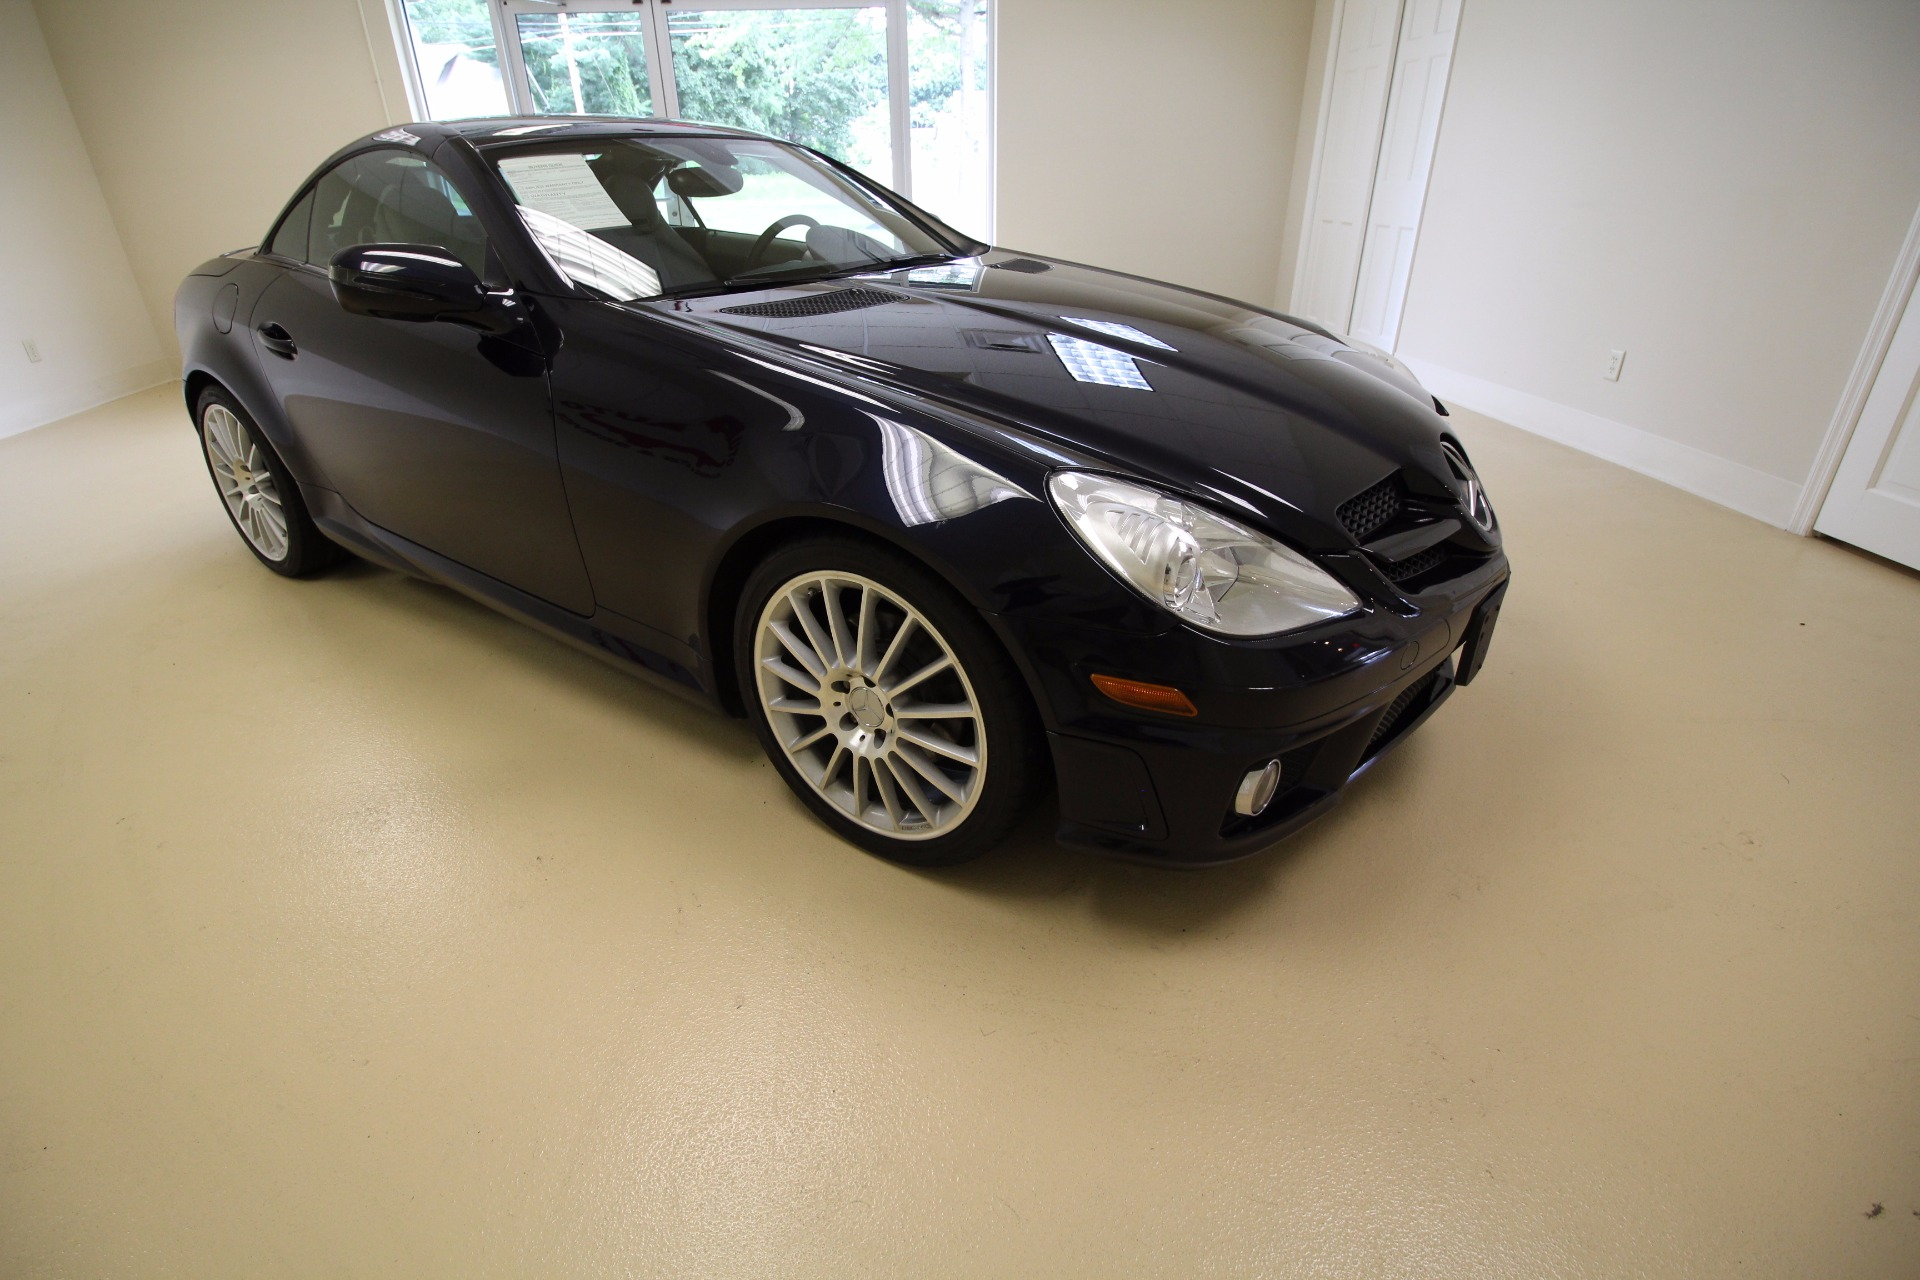 2009 mercedes benz slk slk300 stock 17235 for sale near for Albany mercedes benz